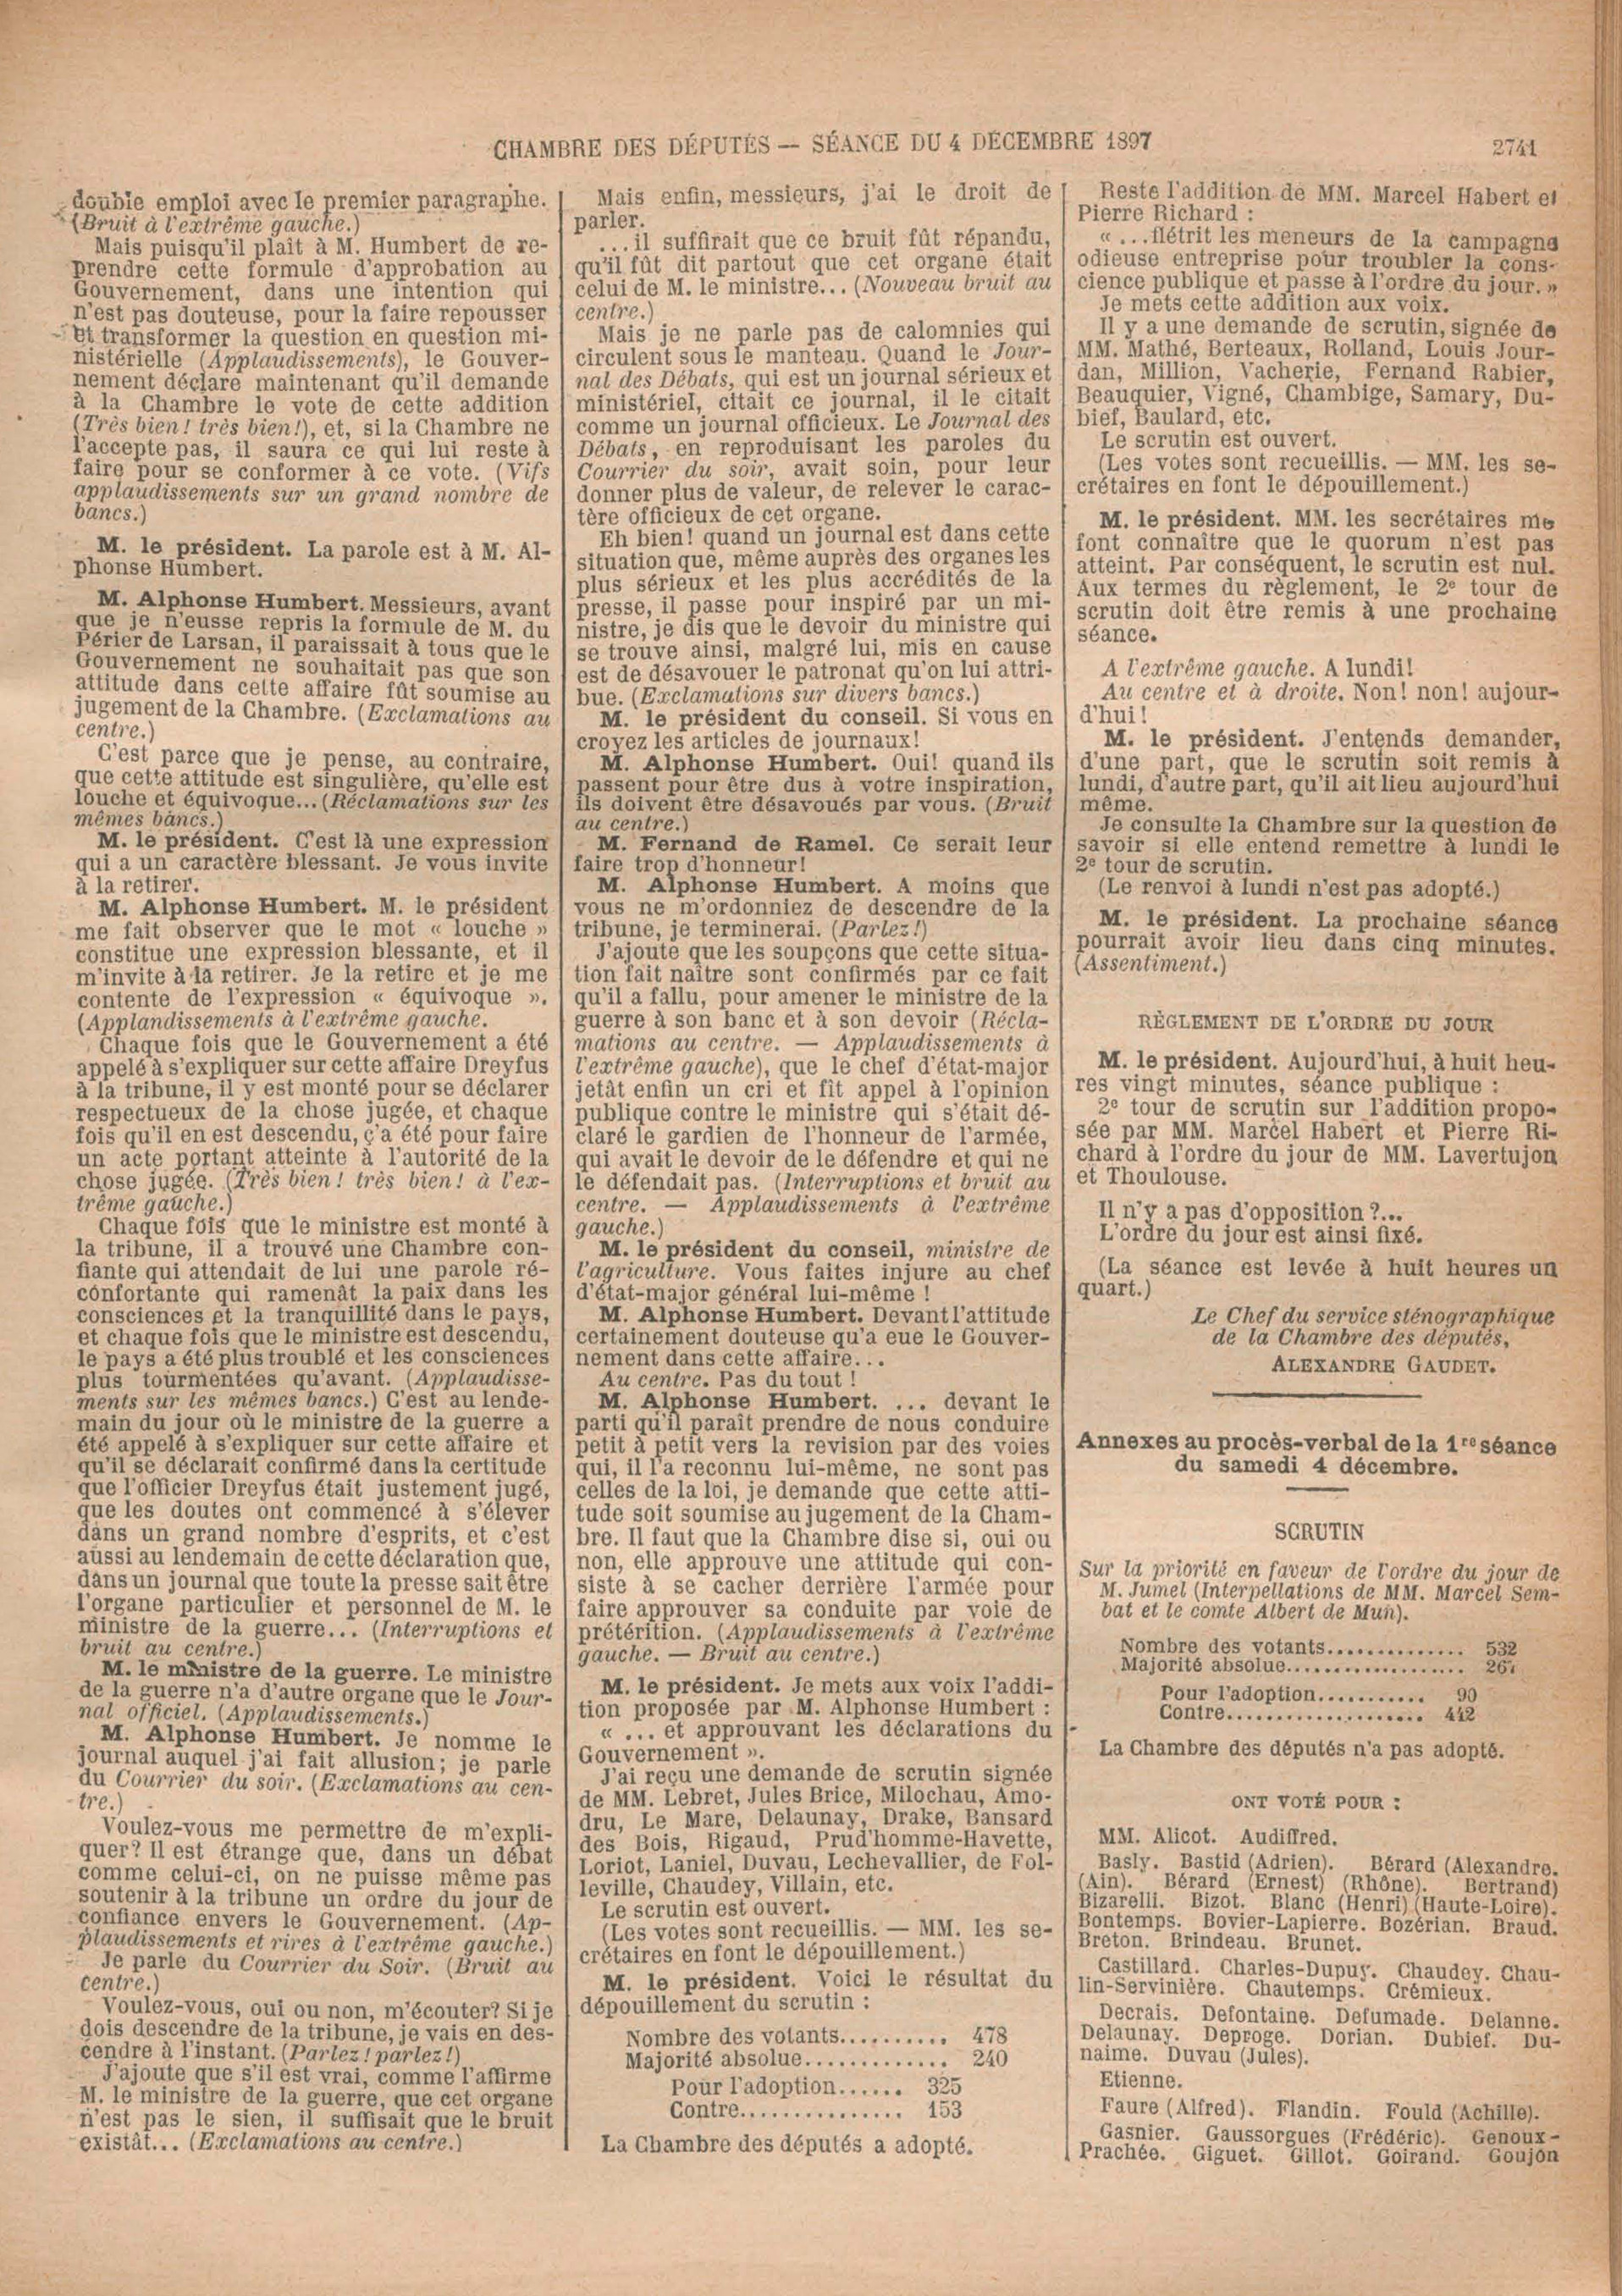 http://expo-paulviollet.univ-paris1.fr/wp-content/uploads/2017/09/Journal_officiel_de_la_République_séance-du-4-décembre-1897_Page_10.jpg